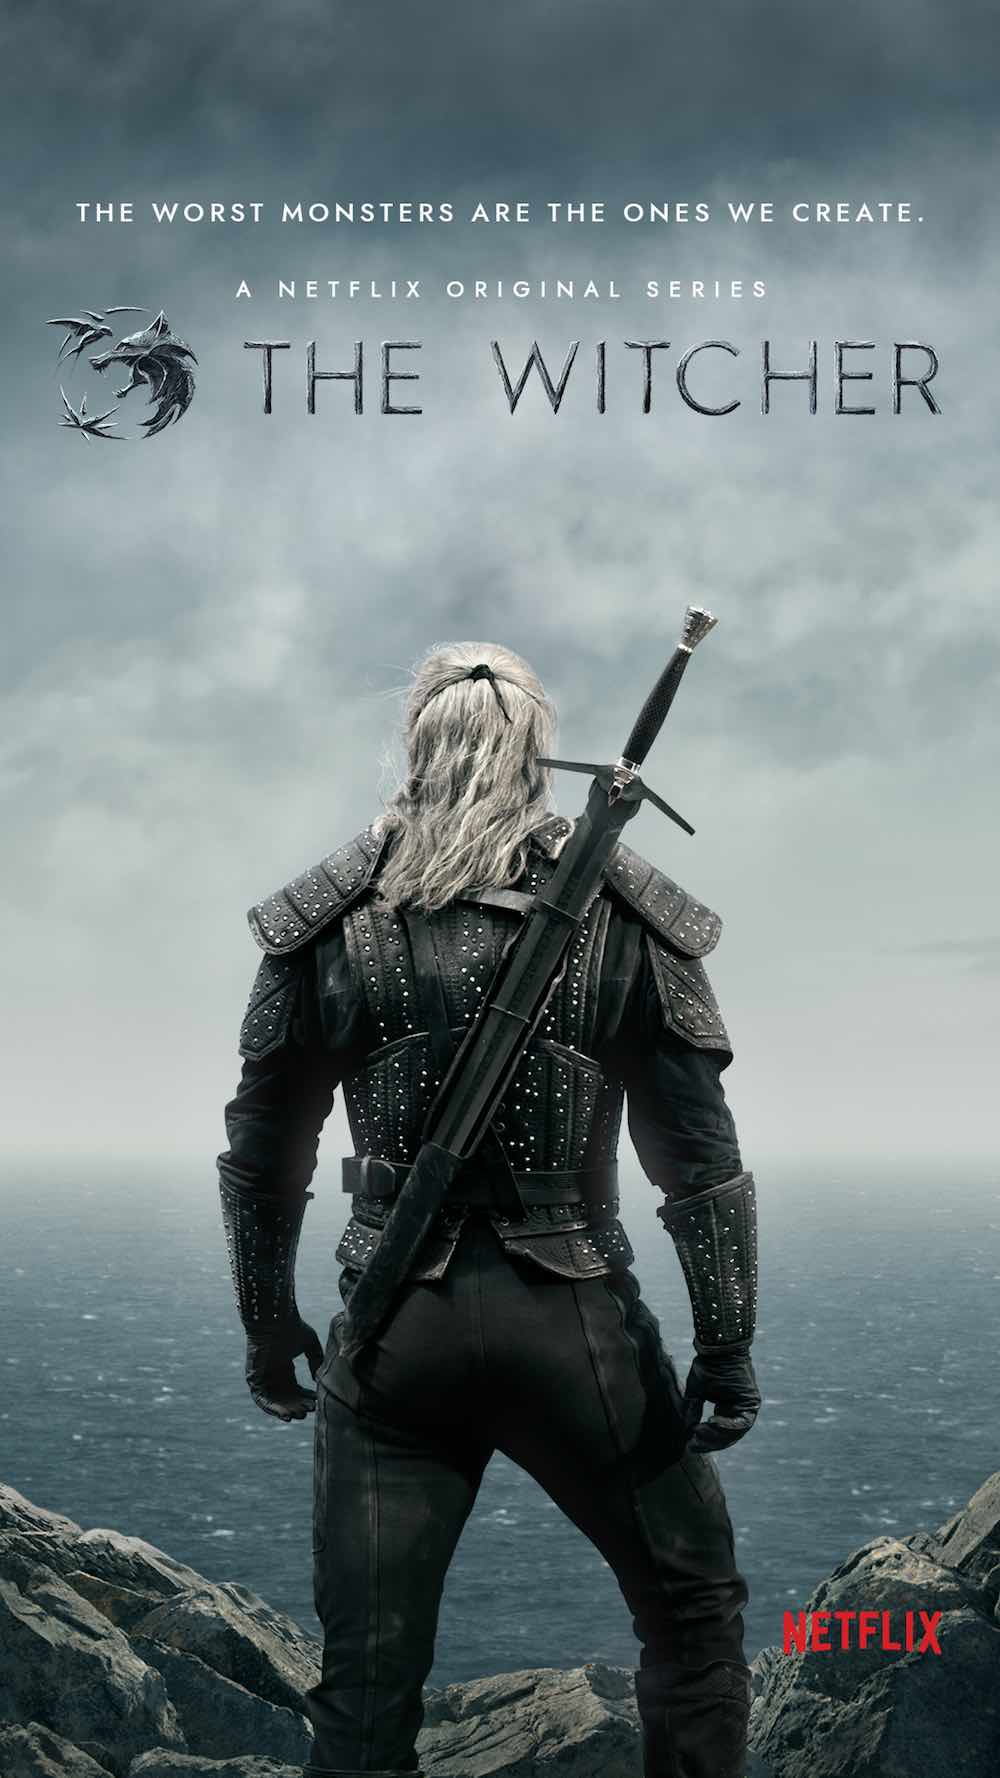 The Witcher - teaser poster